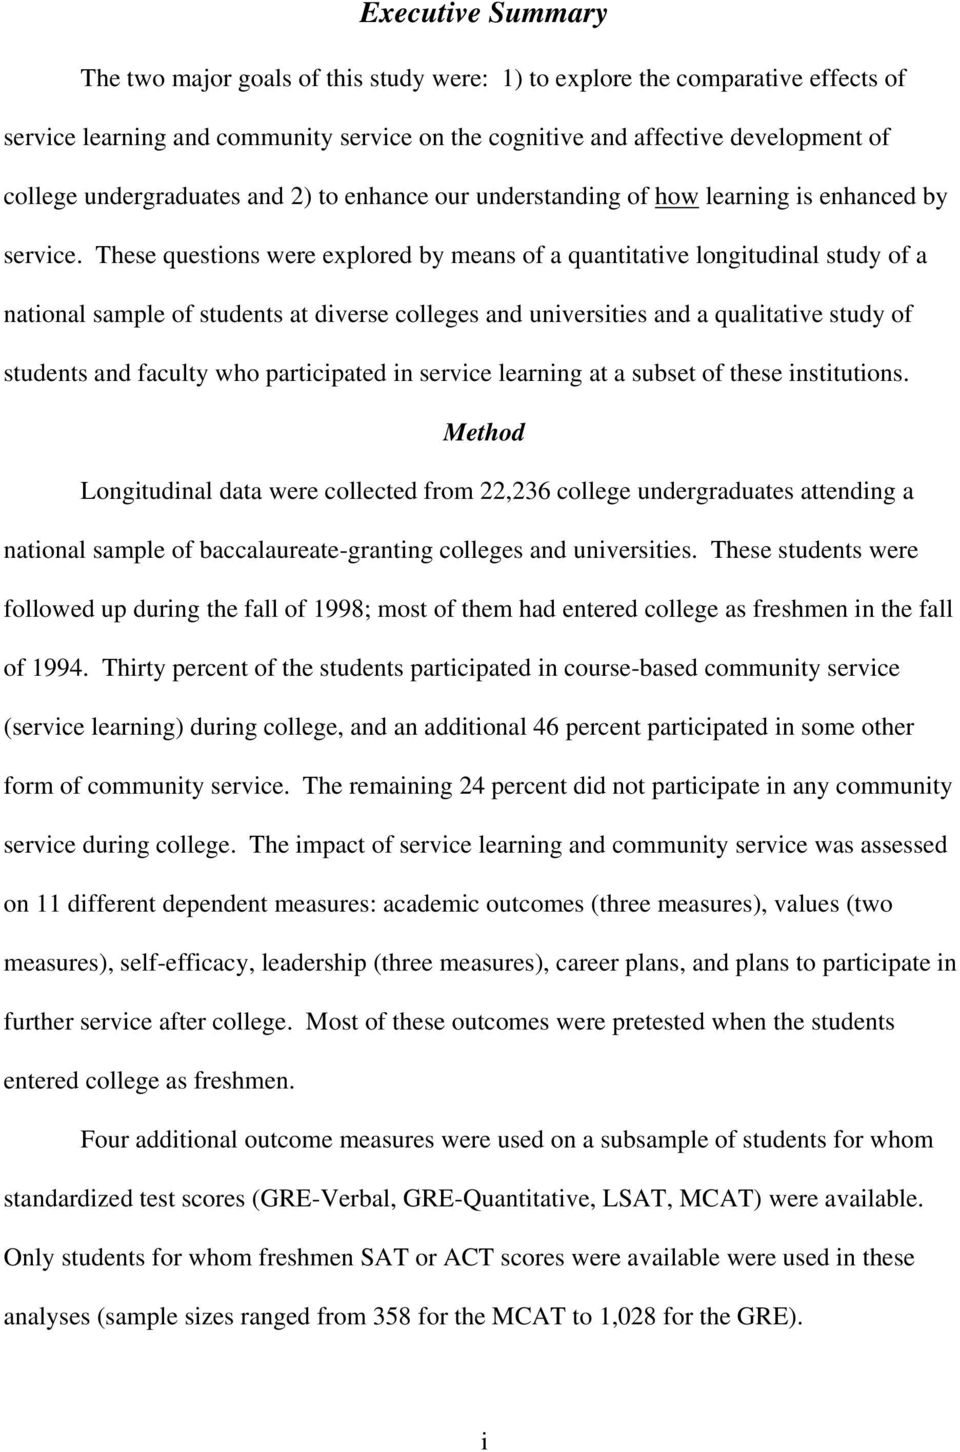 These questions were explored by means of a quantitative longitudinal study of a national sample of students at diverse colleges and universities and a qualitative study of students and faculty who